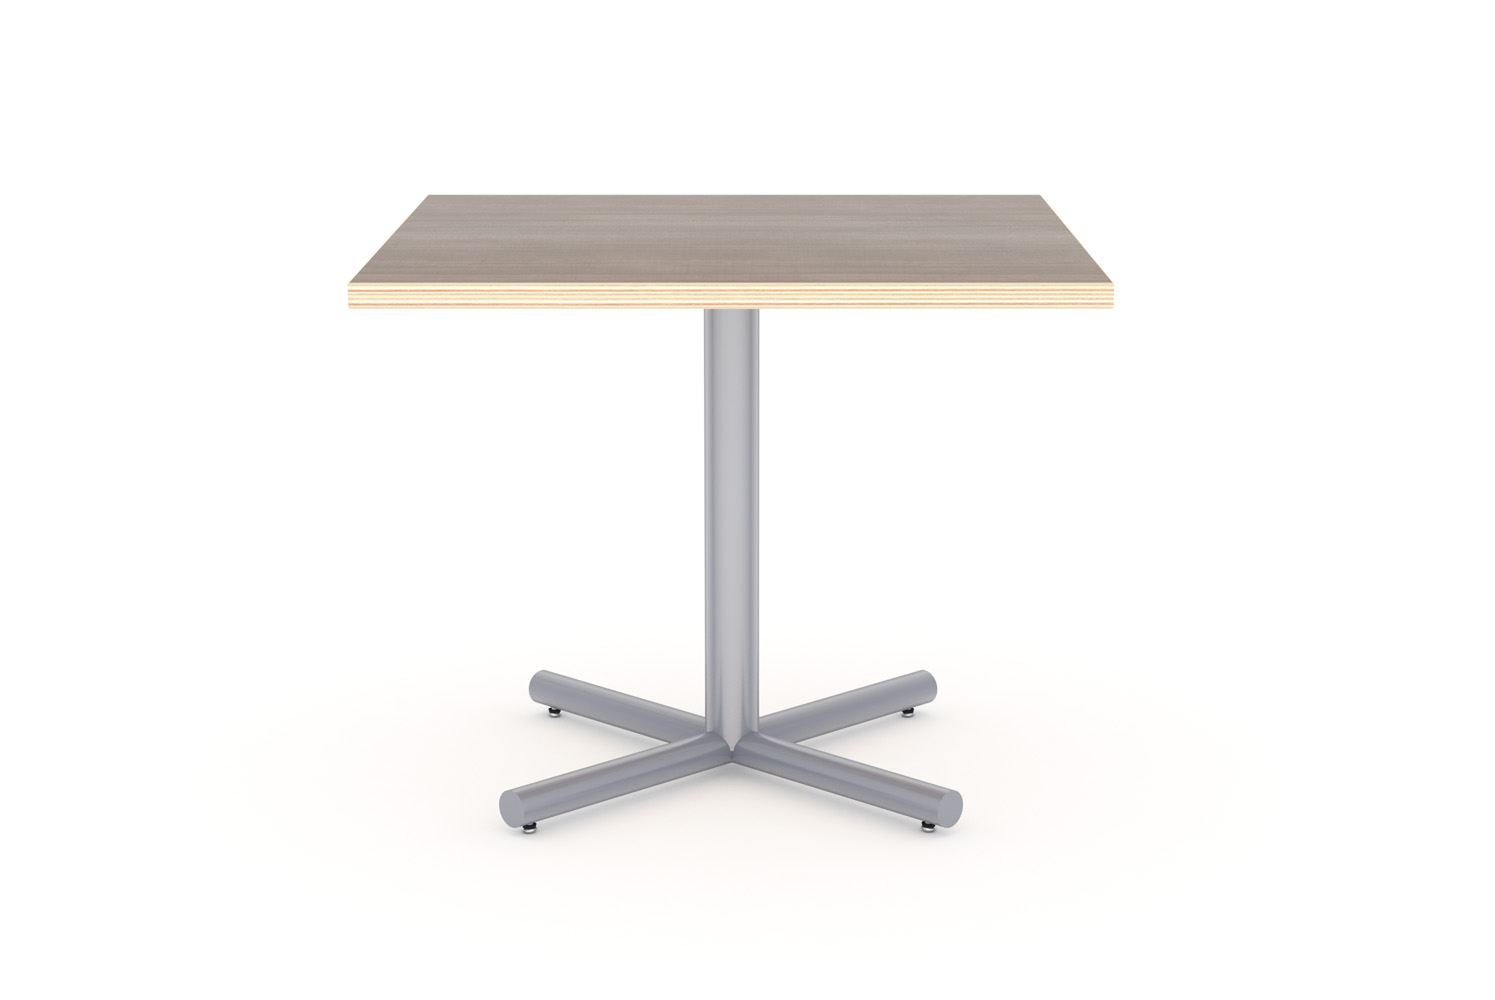 ERG International Cafe Tables - Cafe table and stools